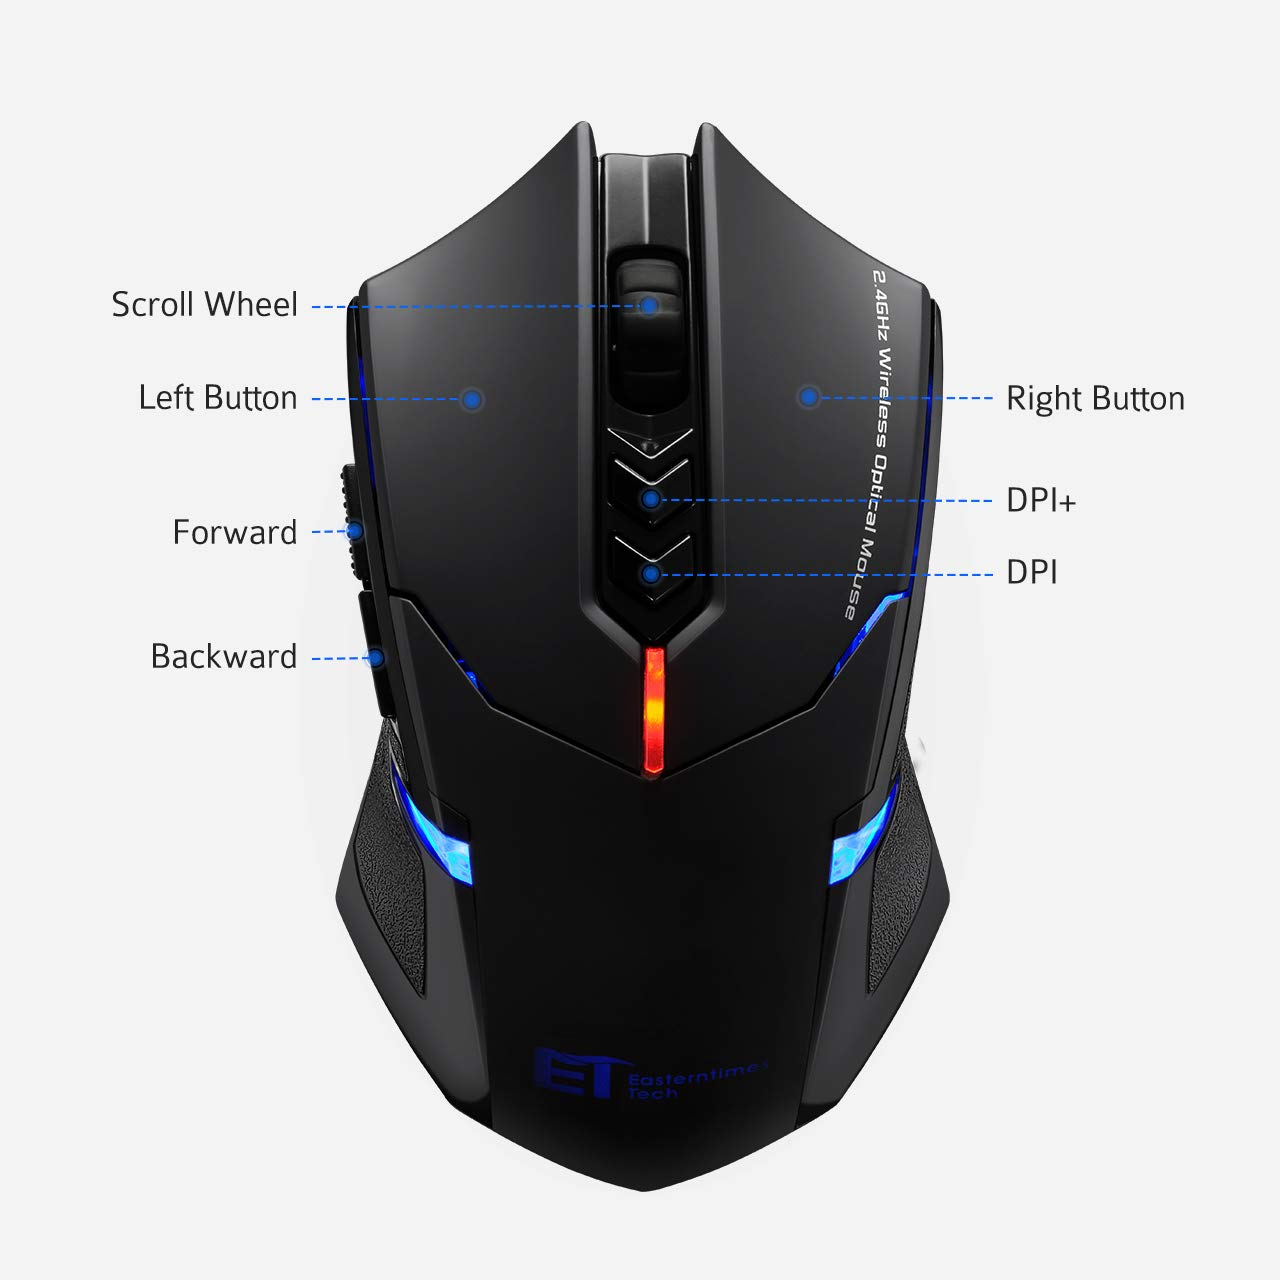 TOPELEK - Number 5 best gaming mouse under 50